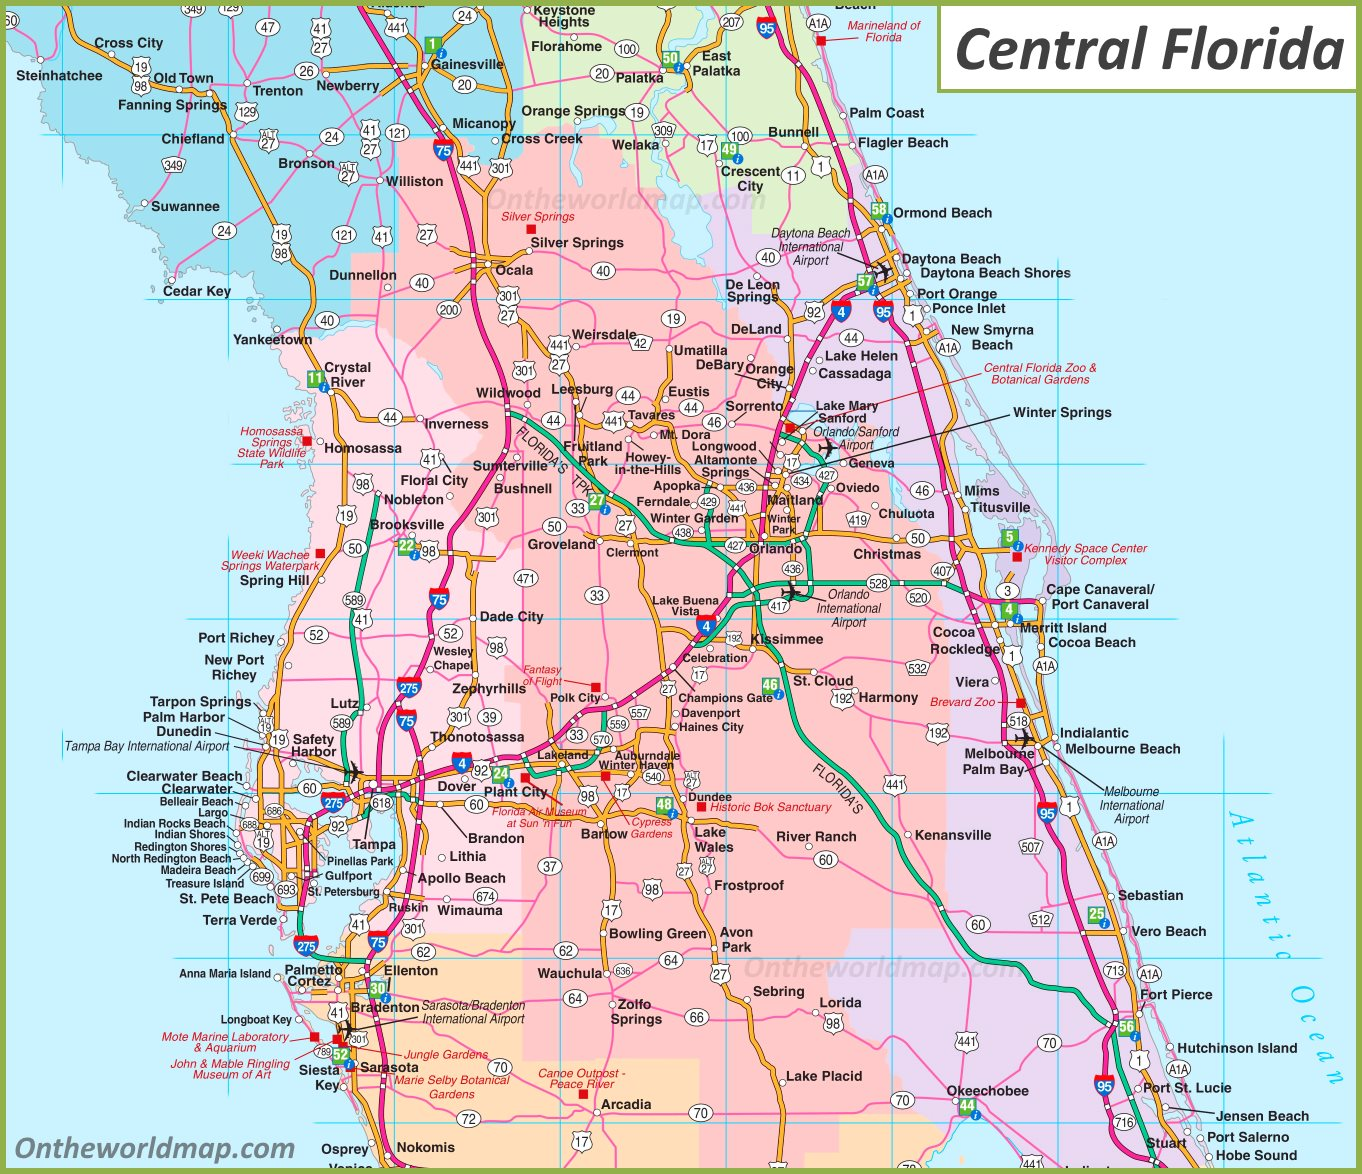 Map of Central Florida Glorida Map on florida geography, maryland map, florida airports, new jersey map, colorado map, florida information, florida christmas, florida cities, michigan map, florida weather, wisconsin map, florida outline, florida directions, florida postcard, missouri map, florida symbols, florida flag, florida beach, north carolina map, florida counties, new york map, florida attractions, florida rivers, florida resorts, minnesota map, nevada map, illinois map, florida food, florida coast, tennessee map, kansas map, idaho map, florida lakes, pennsylvania map, florida from space, arkansas map,